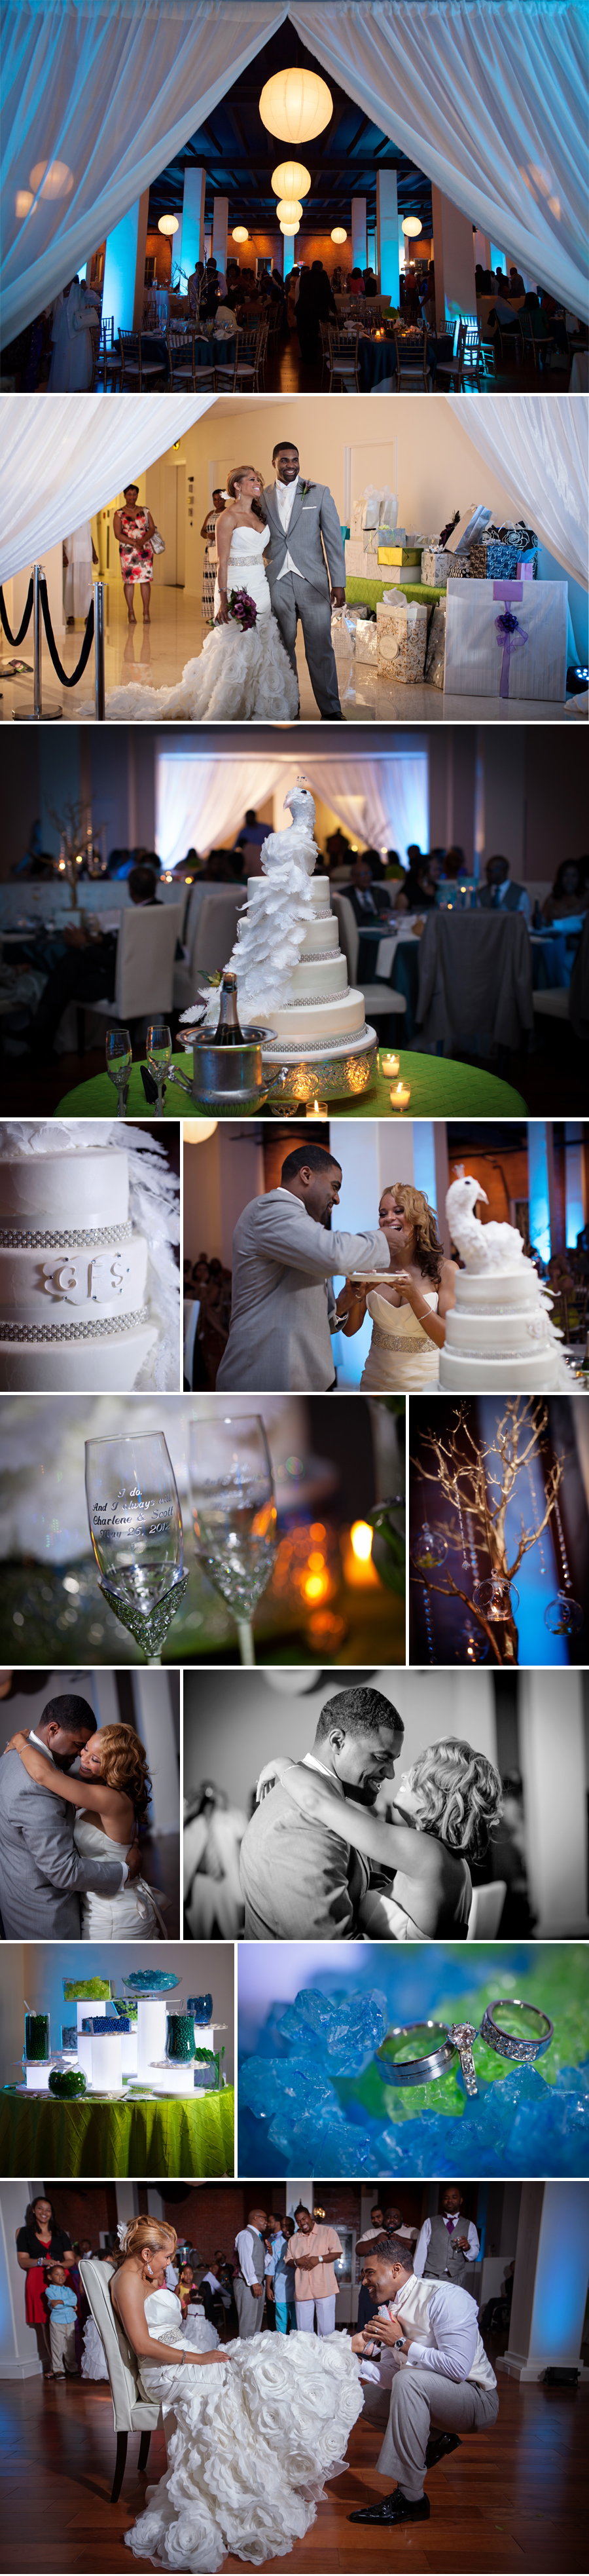 This has to be one of my favorite wedding cakes!! The feathers that drape down the side of the cake made it the perfect centerpiece for the room.